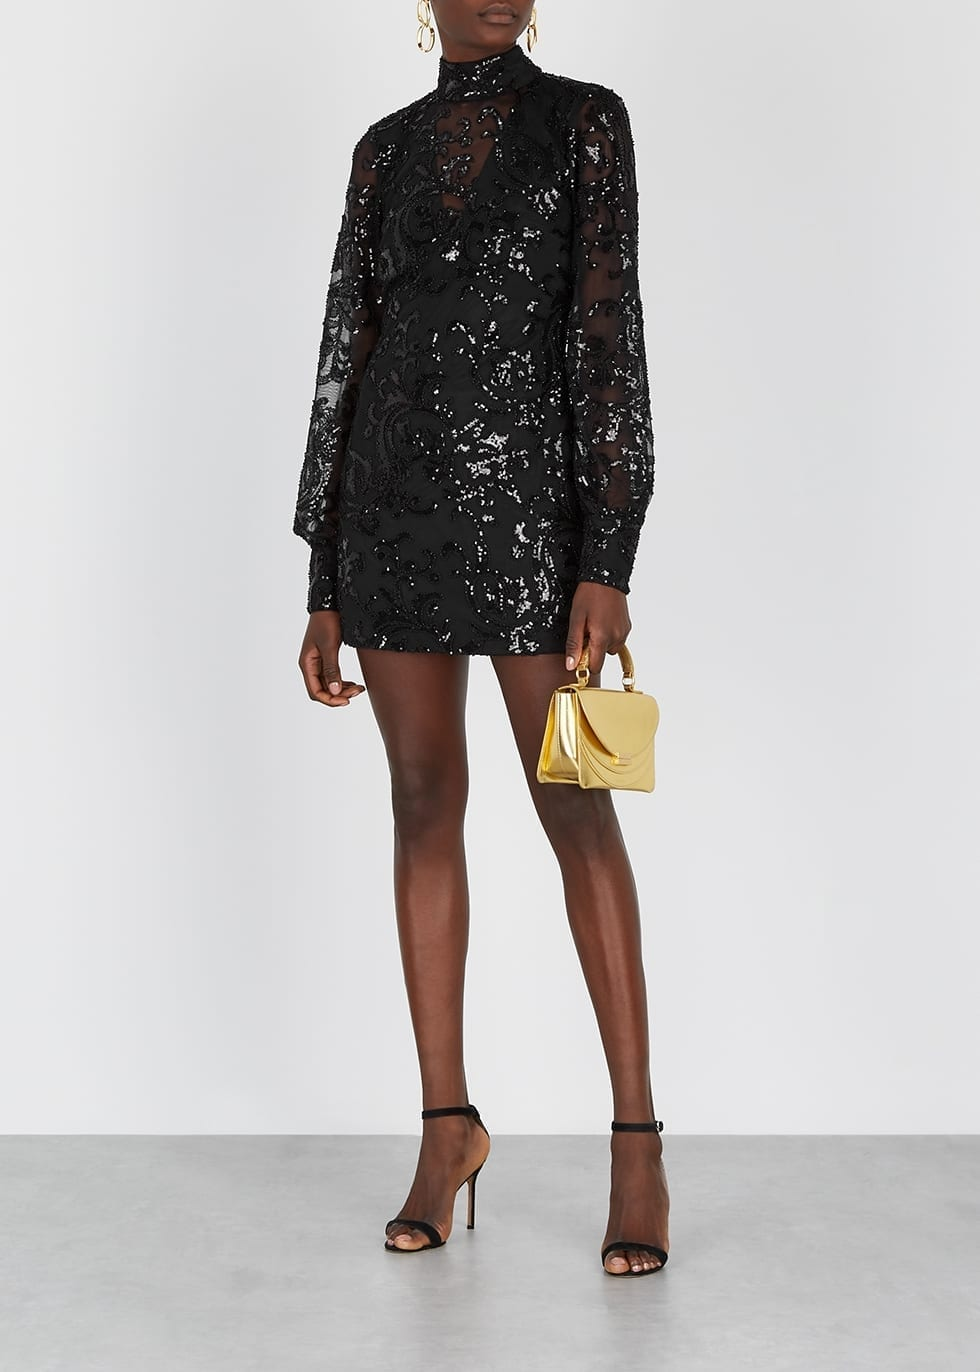 ALEXIS Franciska Black Sequin-embellished Mini Dress